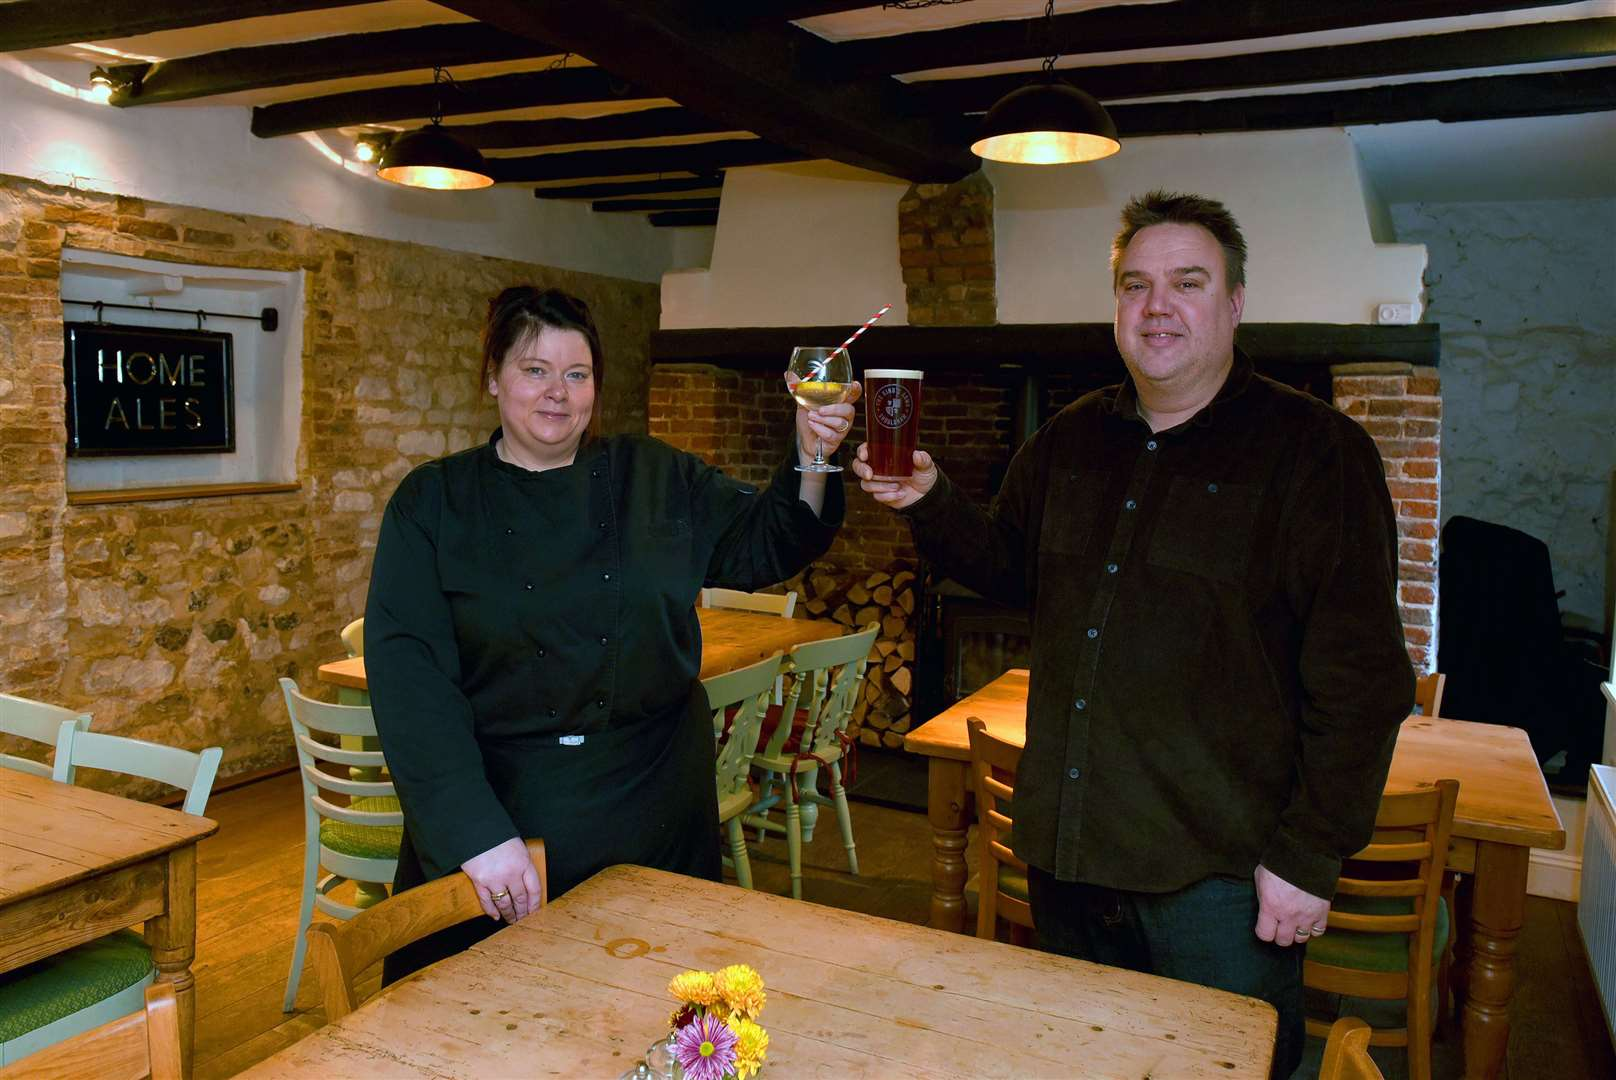 The Kings Arms, Shouldham, which was named regional winner in the final of the inaugural Parliamentary Pub of the Year competition. Pictured are Jo Freeman (Head Chef) and Ian Skinner (licensee)